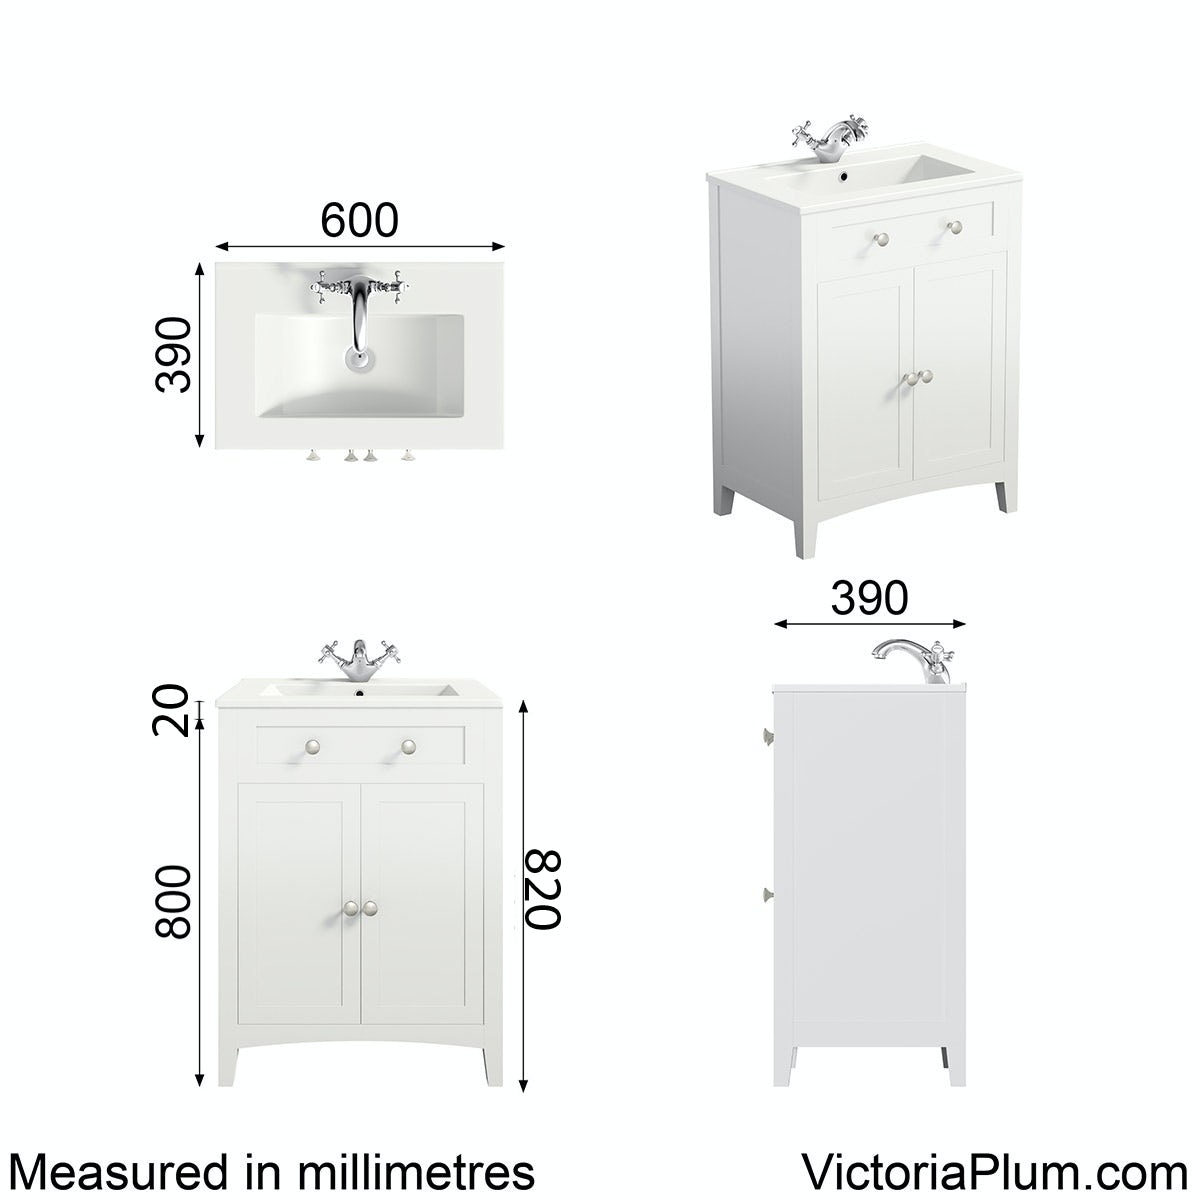 Dimensions for The Bath Co. Camberley white vanity unit with basin 600mm